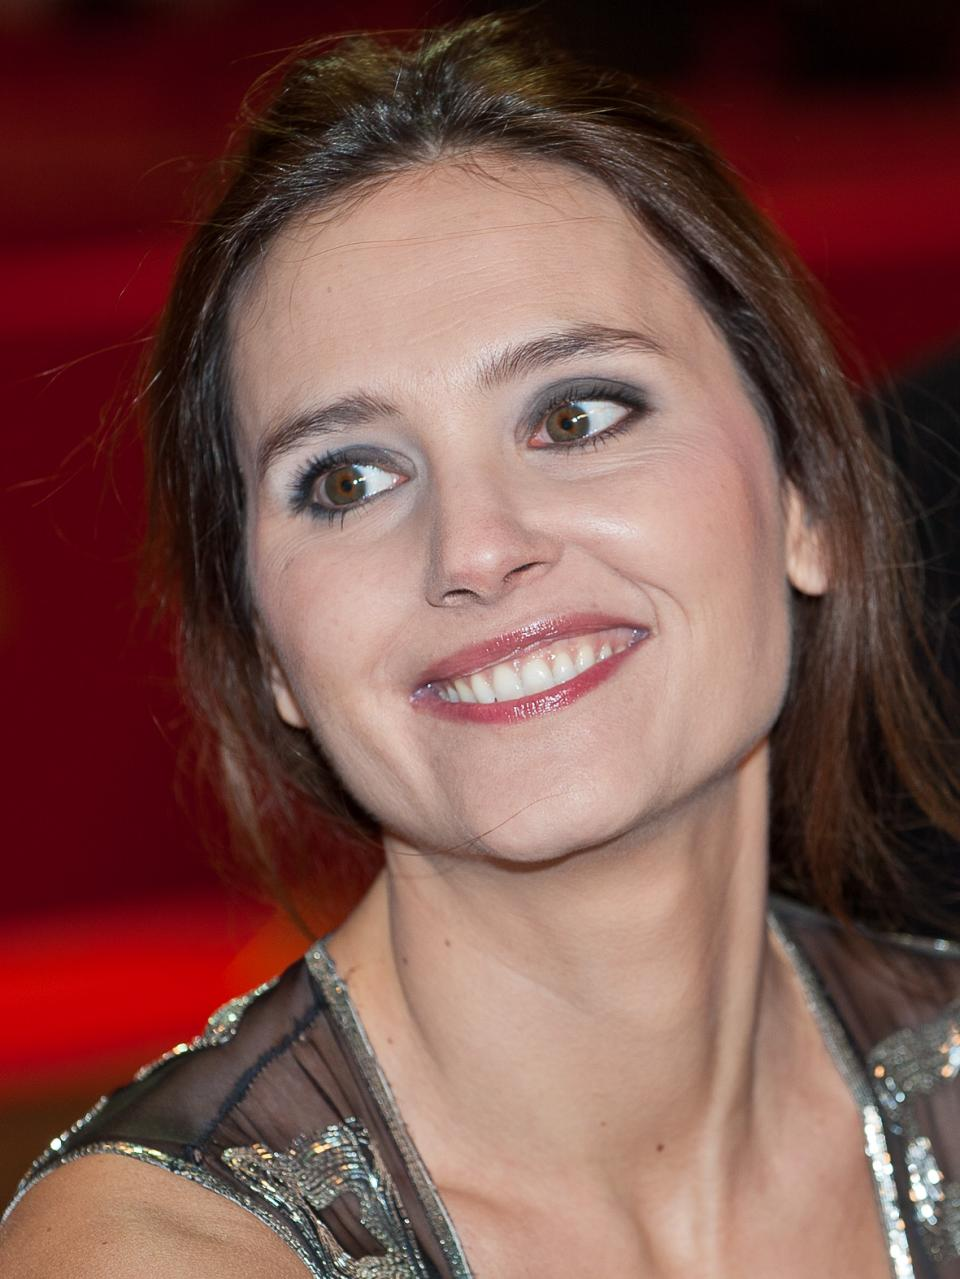 Tamanna Hd Wallpapers Free Download Virginie Ledoyen Wallpapers High Resolution And Quality